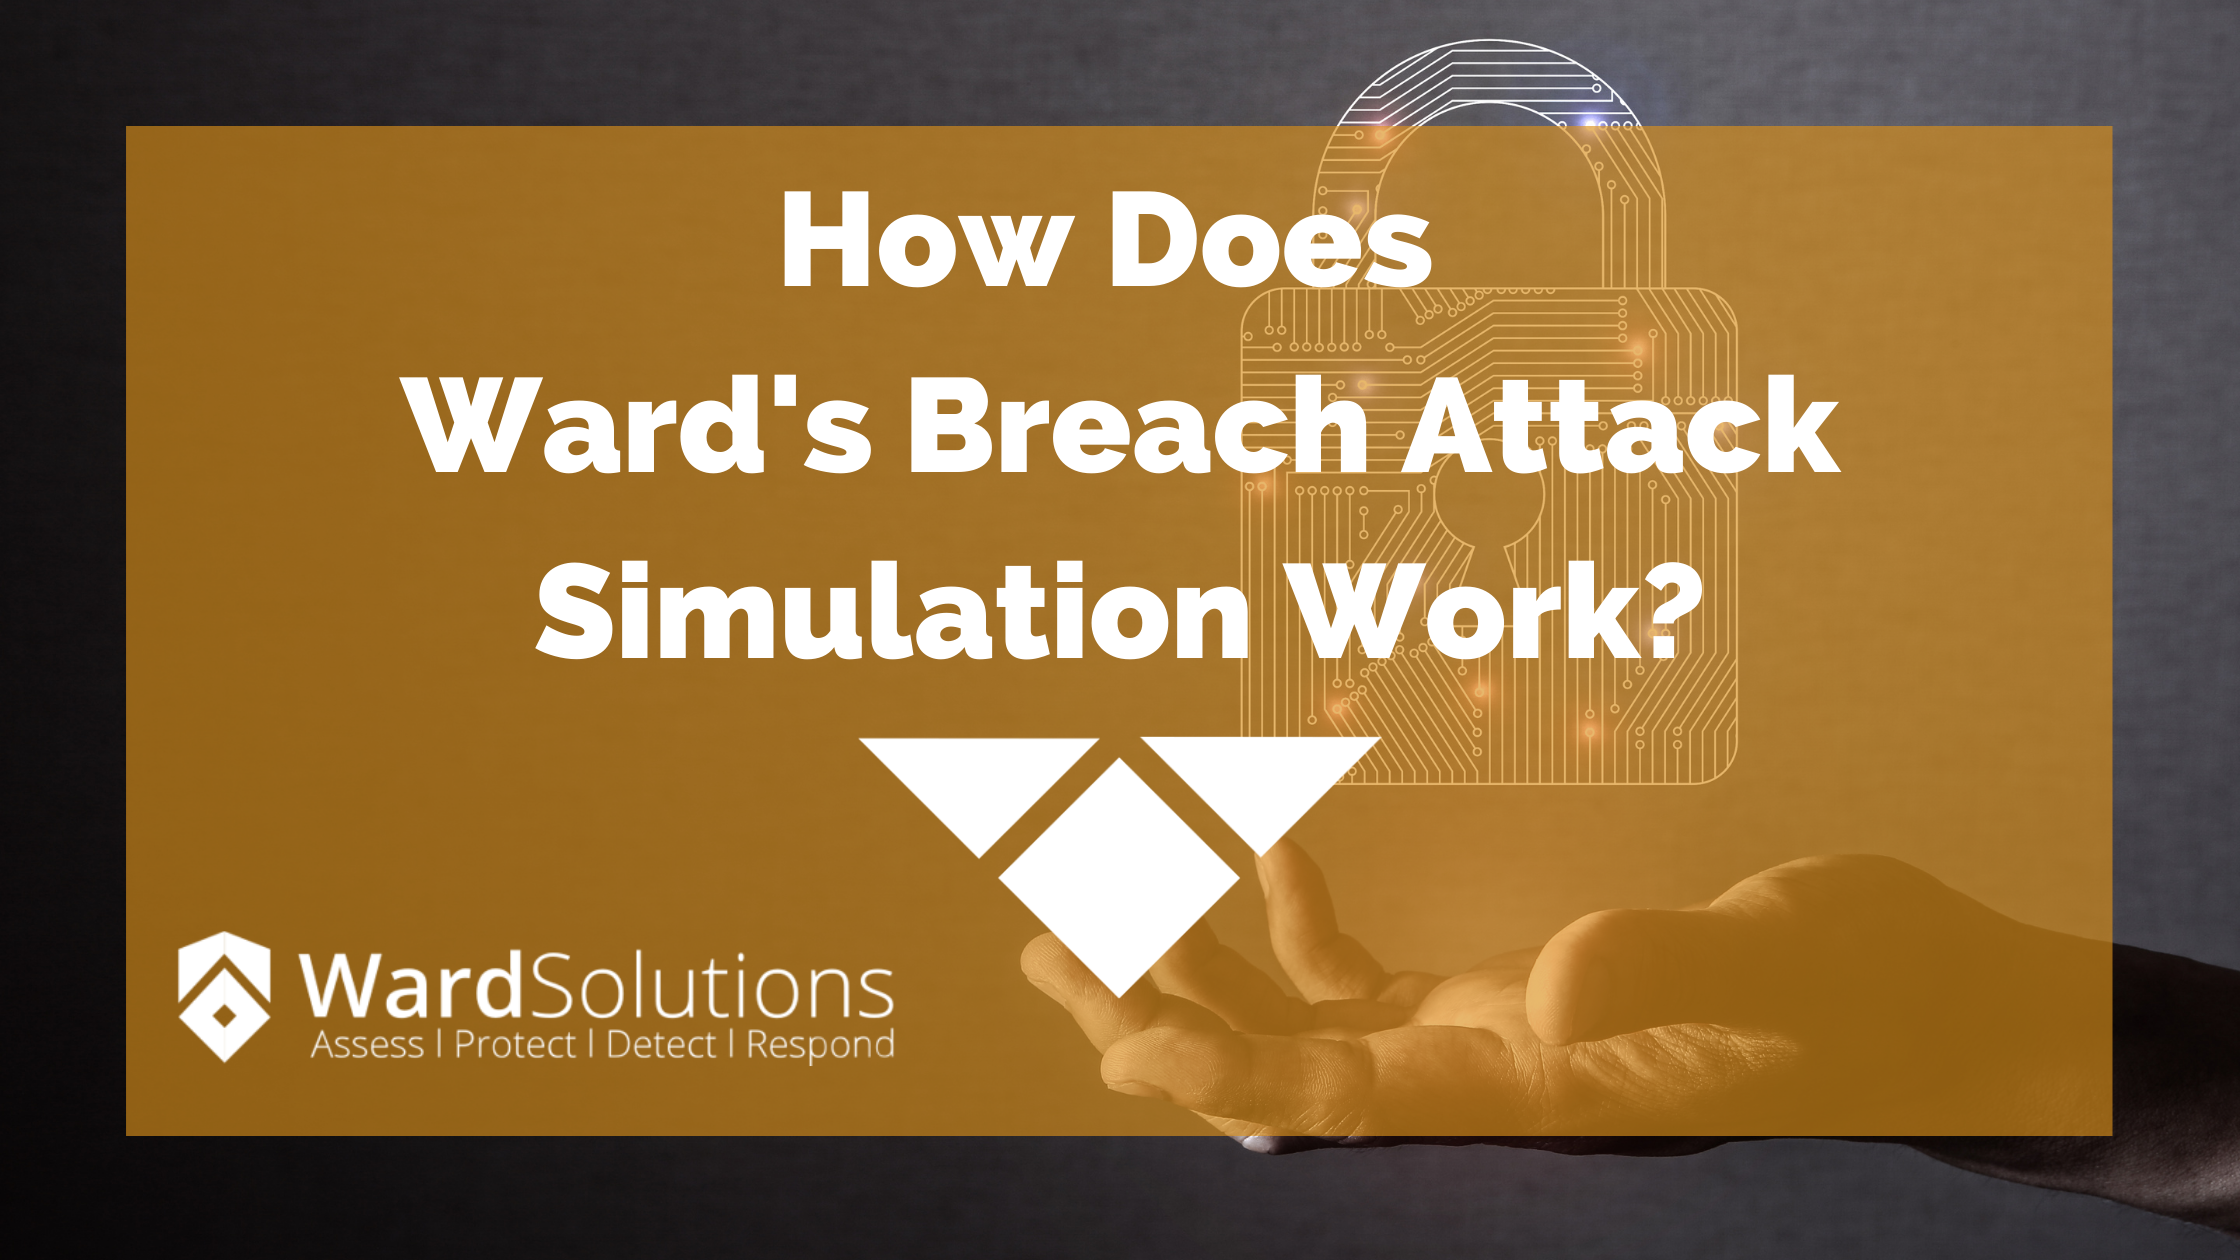 How does Wards Breach Attack Simulation Service work?